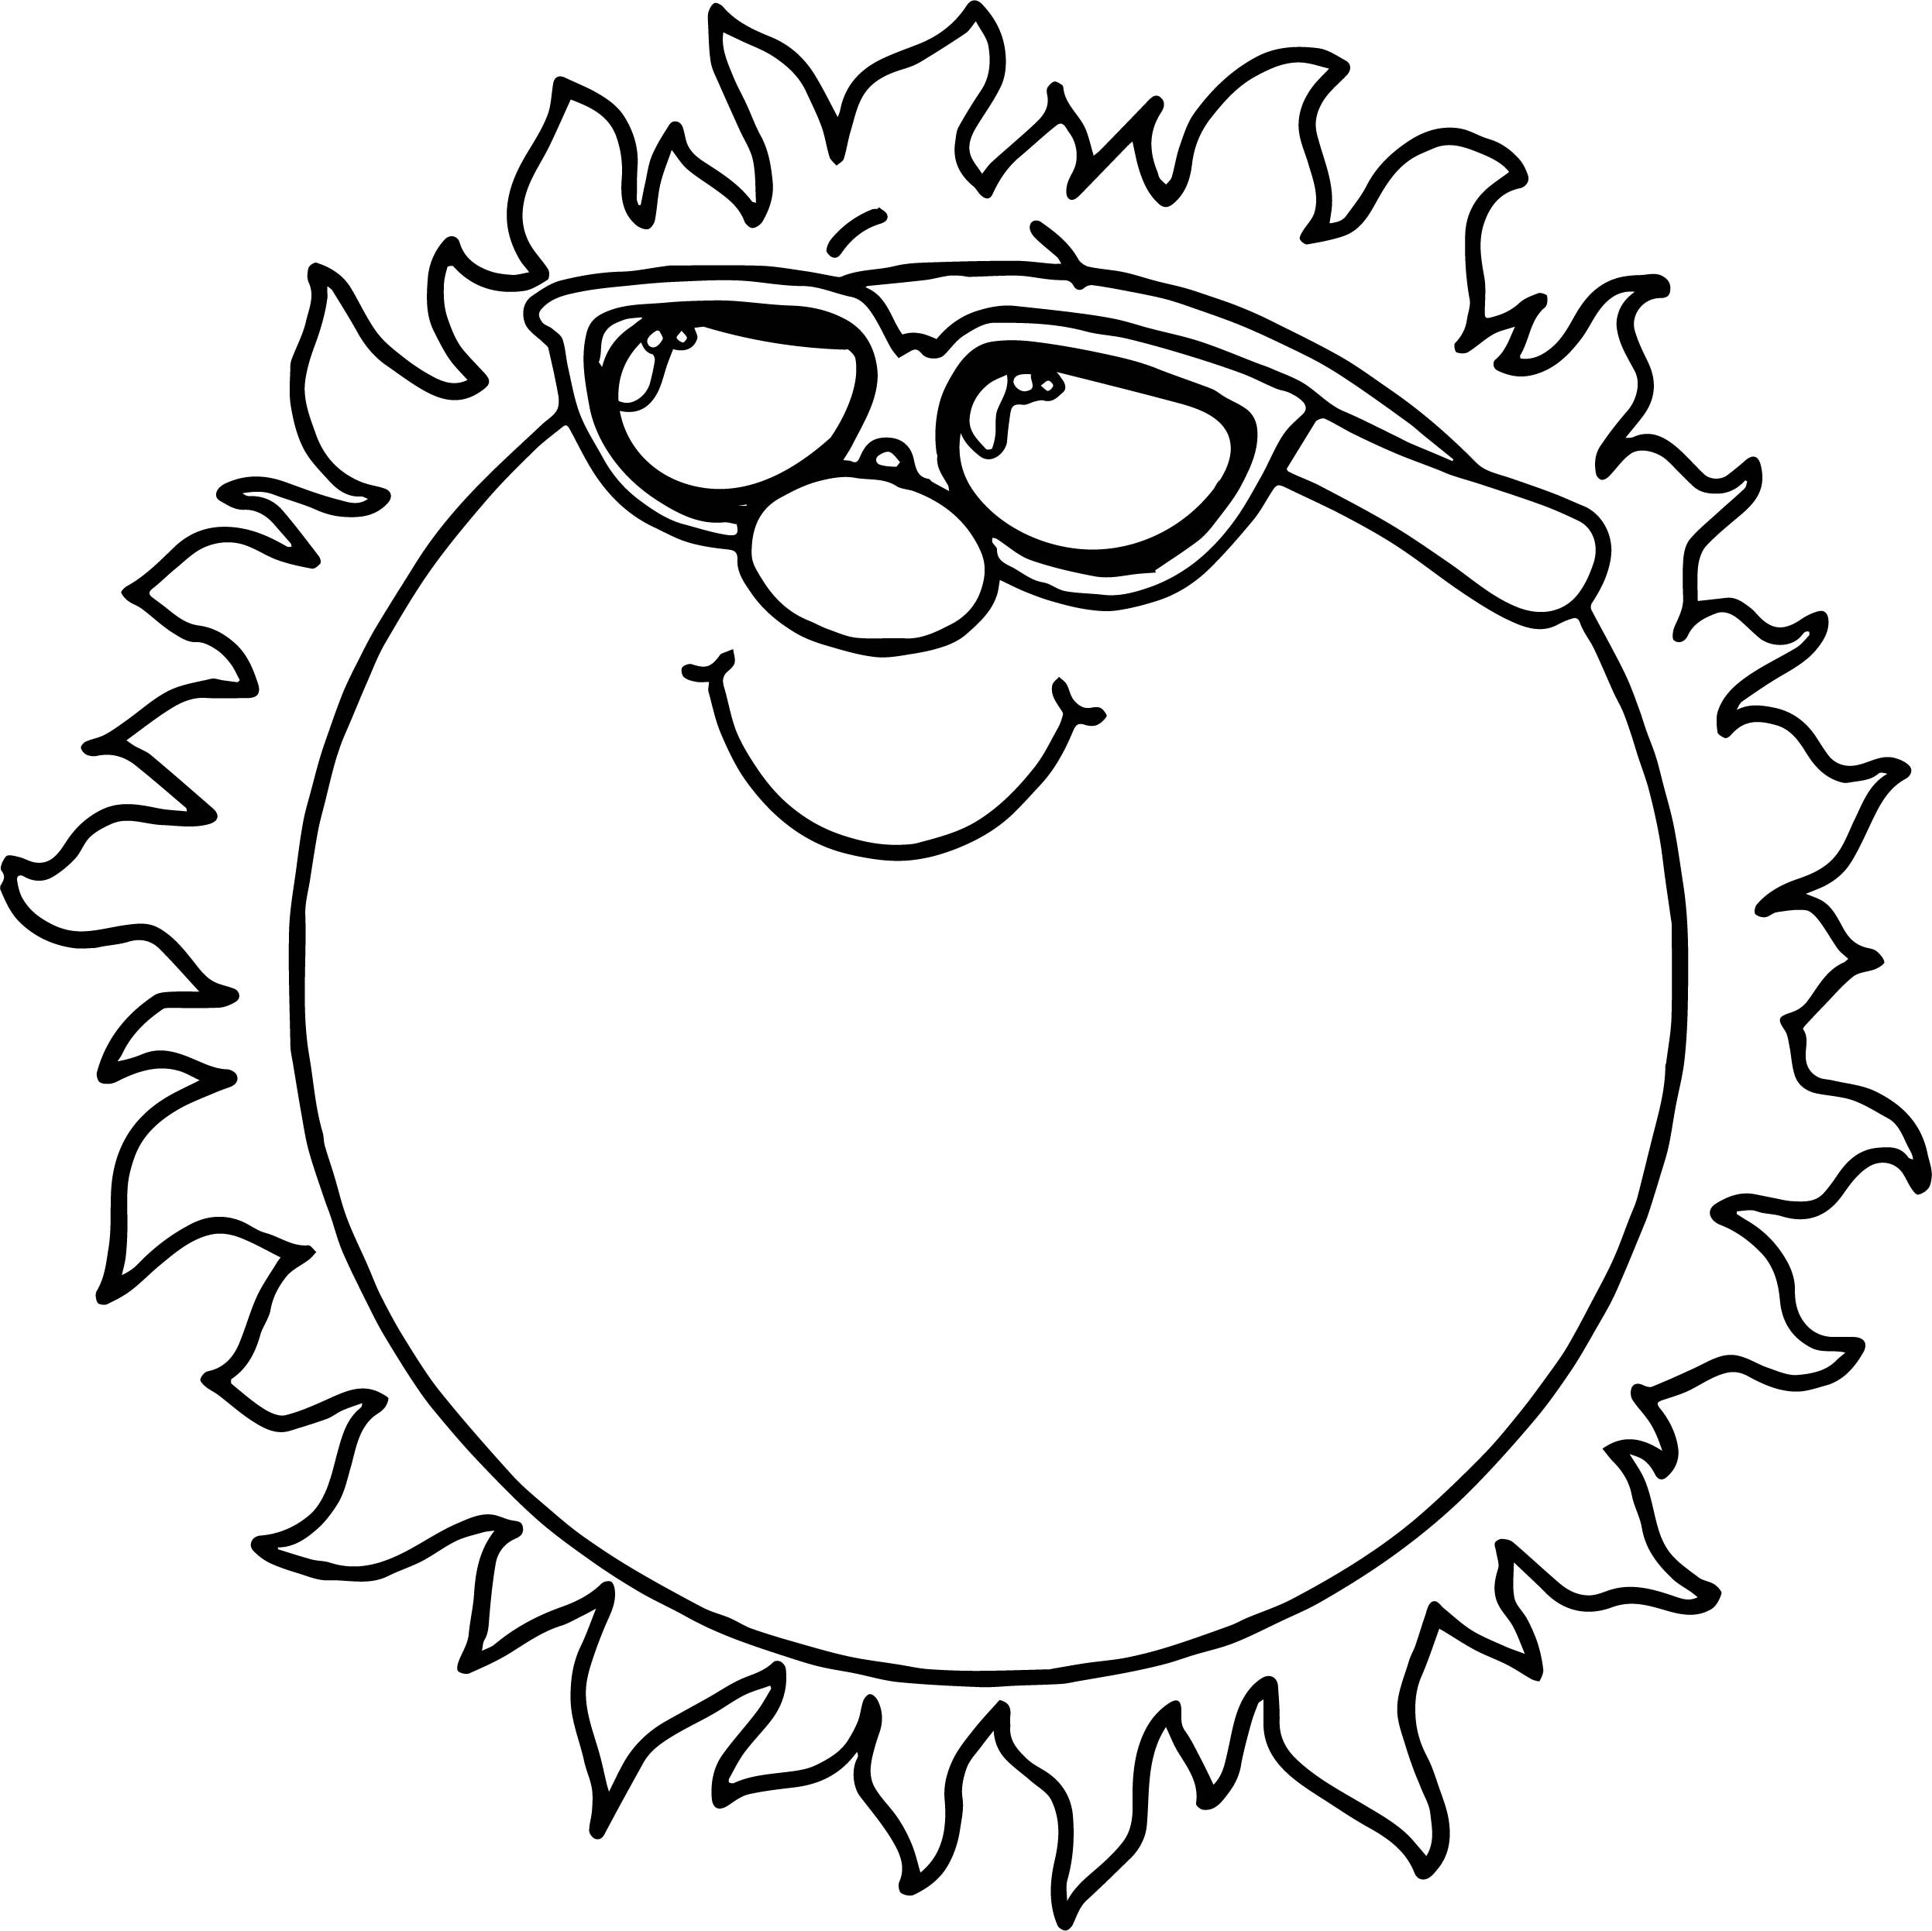 2494x2493 Solar Eclipse Coloring Page Lovely Coloring Book Summer Sun Page